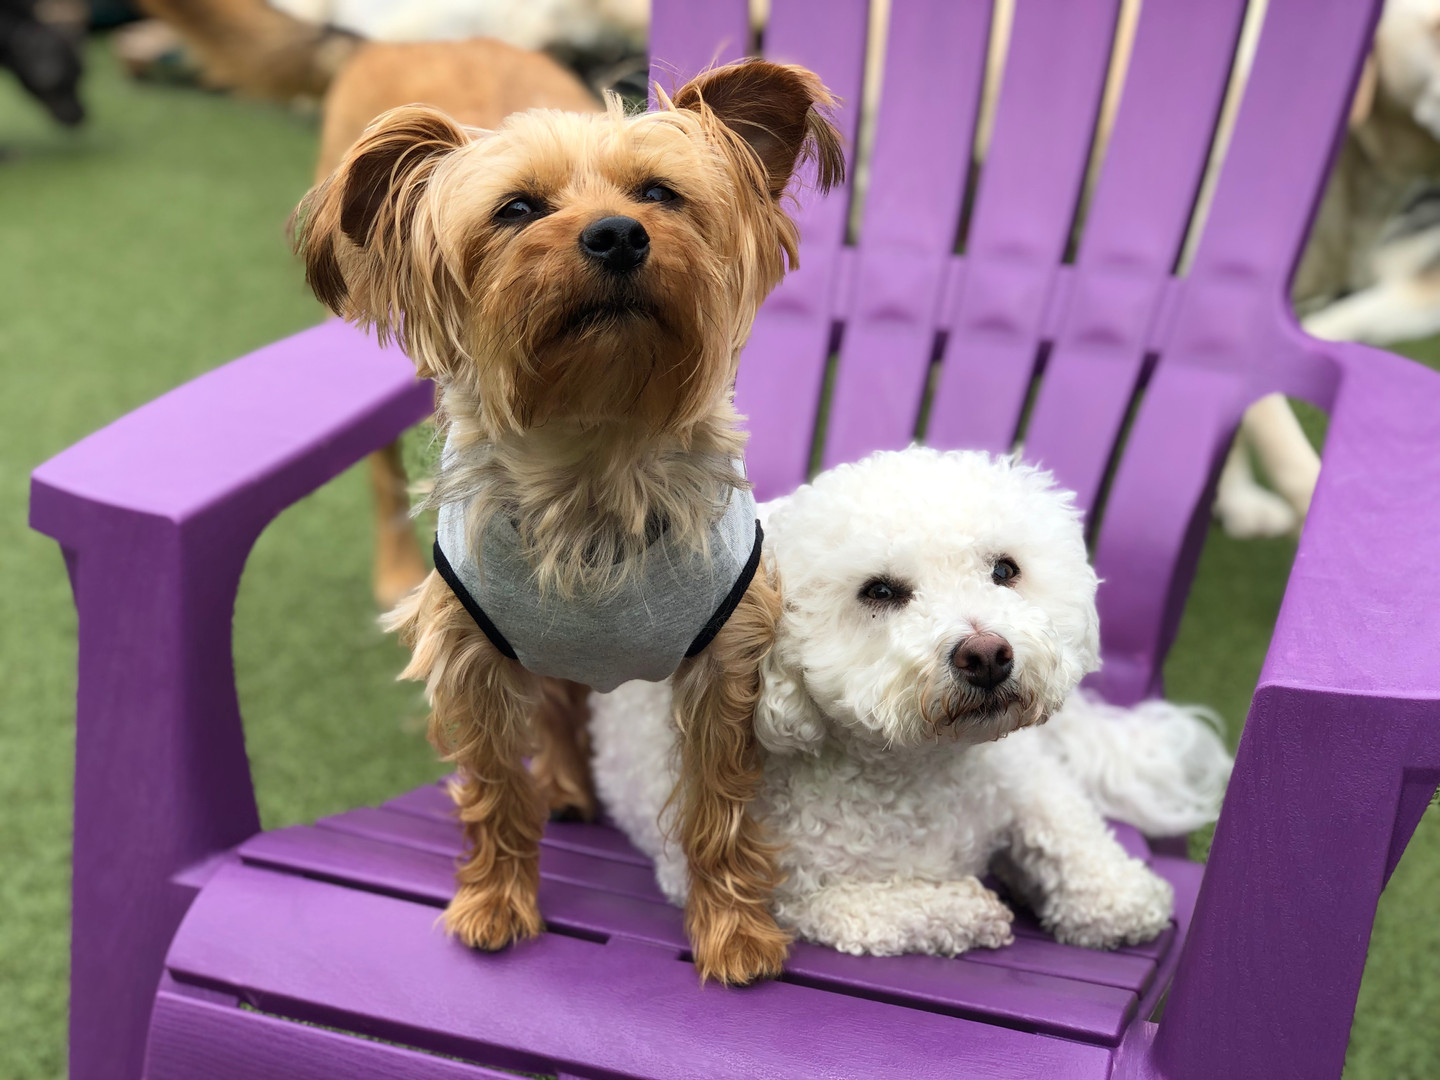 Sharp dressed dog and friend at doggy day care